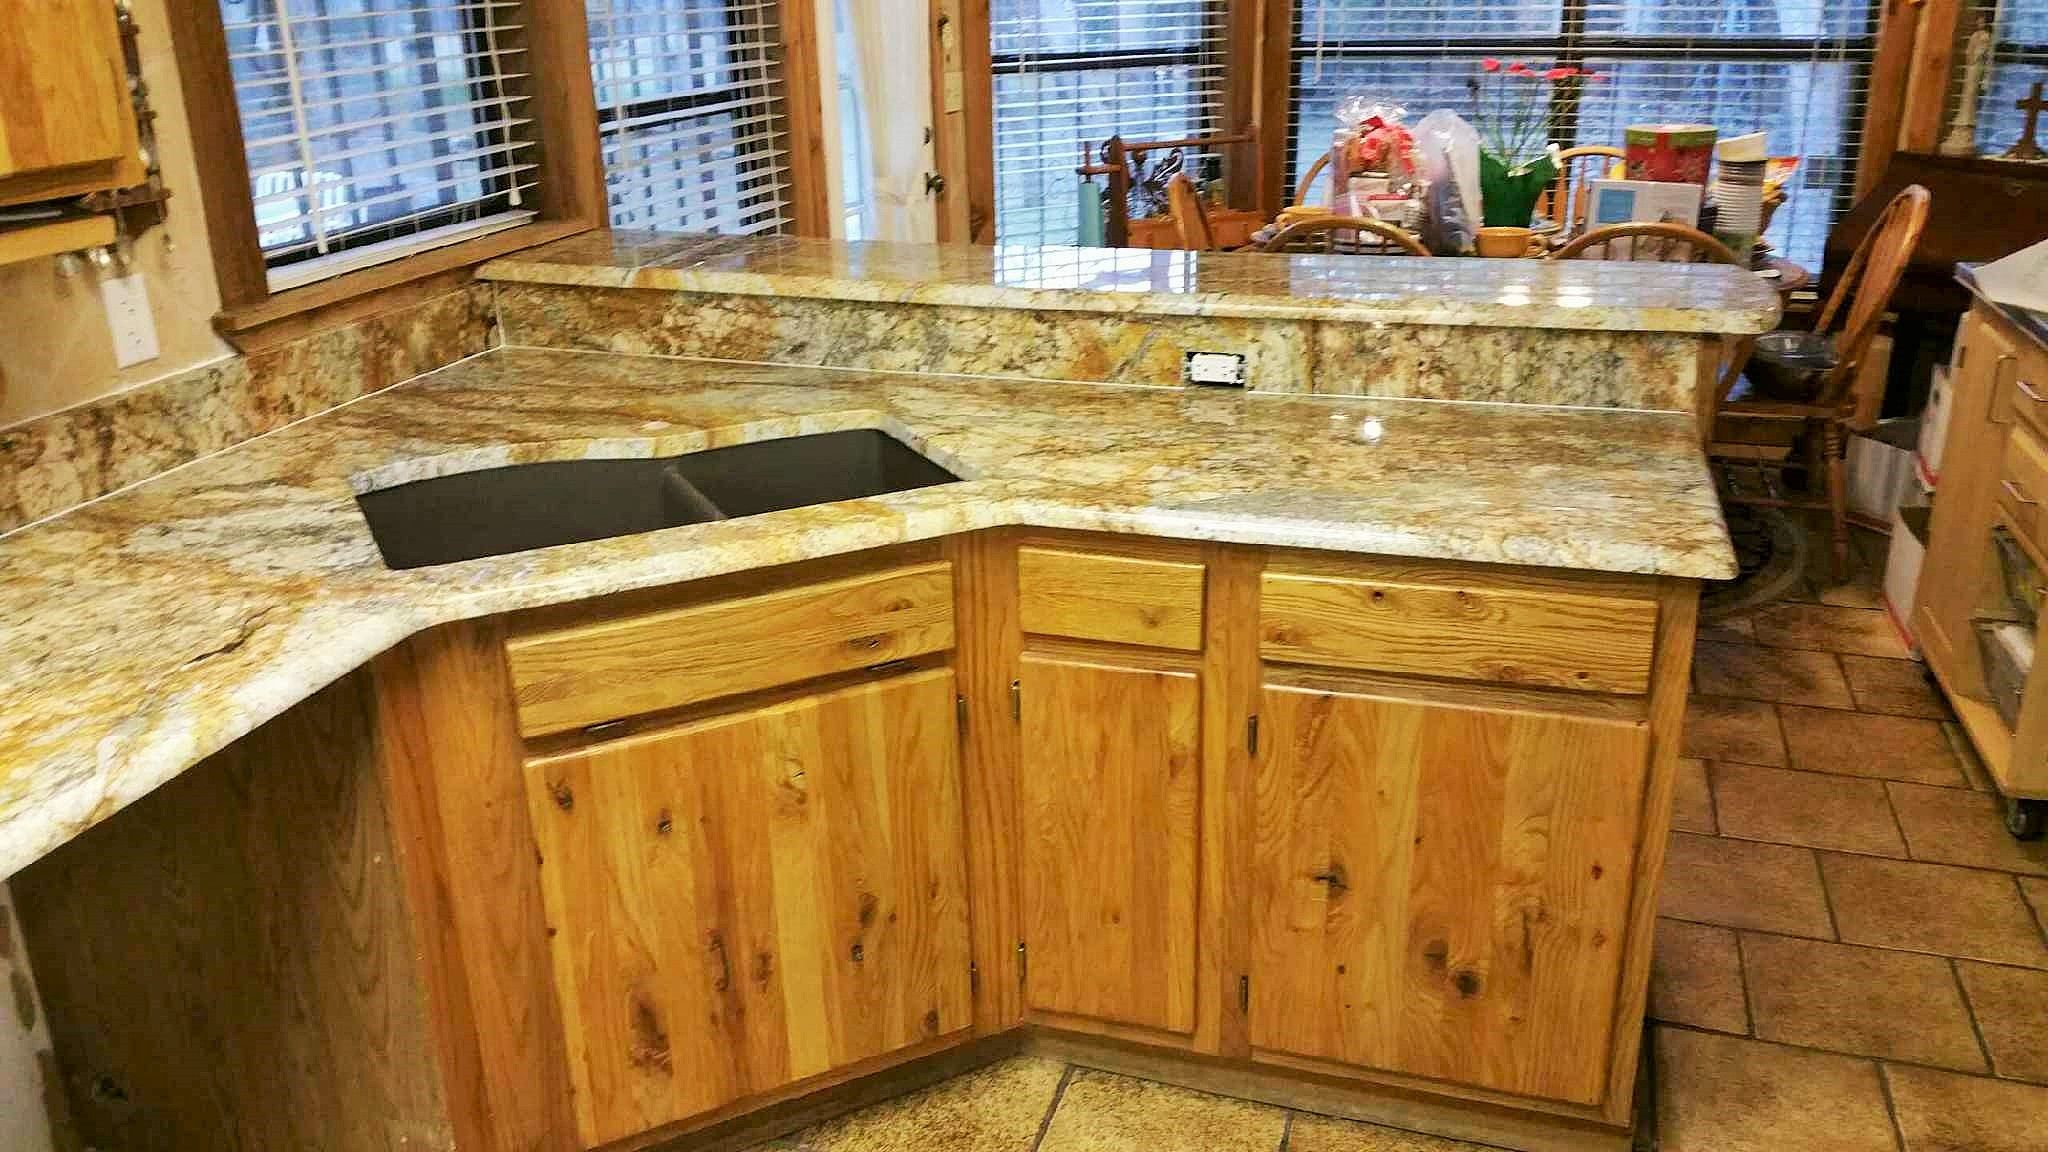 Geriba Gold Granite Neutral Rustic Kitchen Remodel Granite Countertops Home Decor